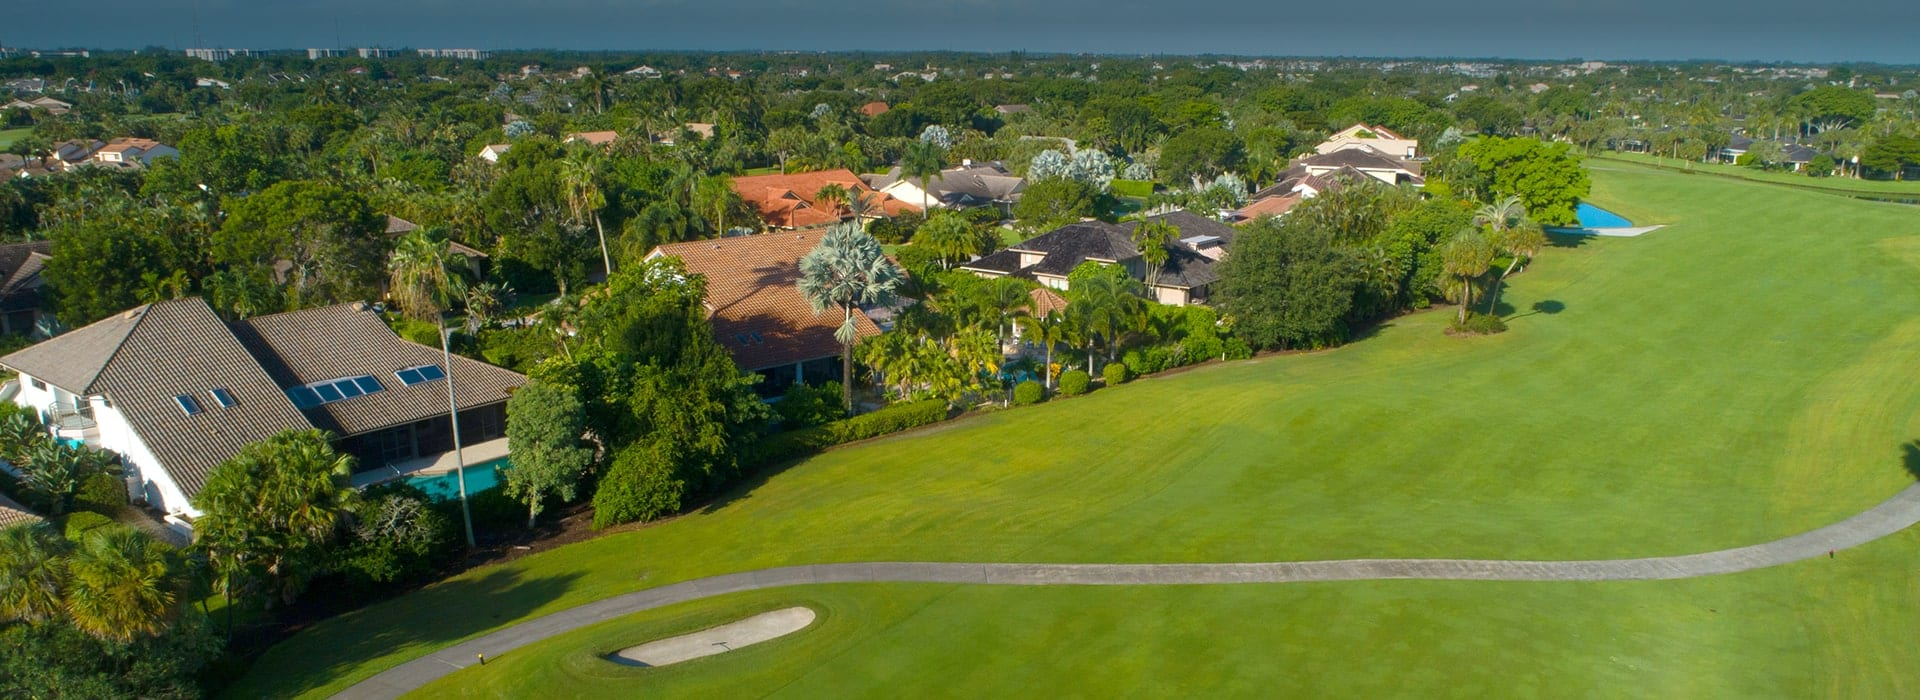 Mahogany Bend of Boca West custom-built homes with golf views